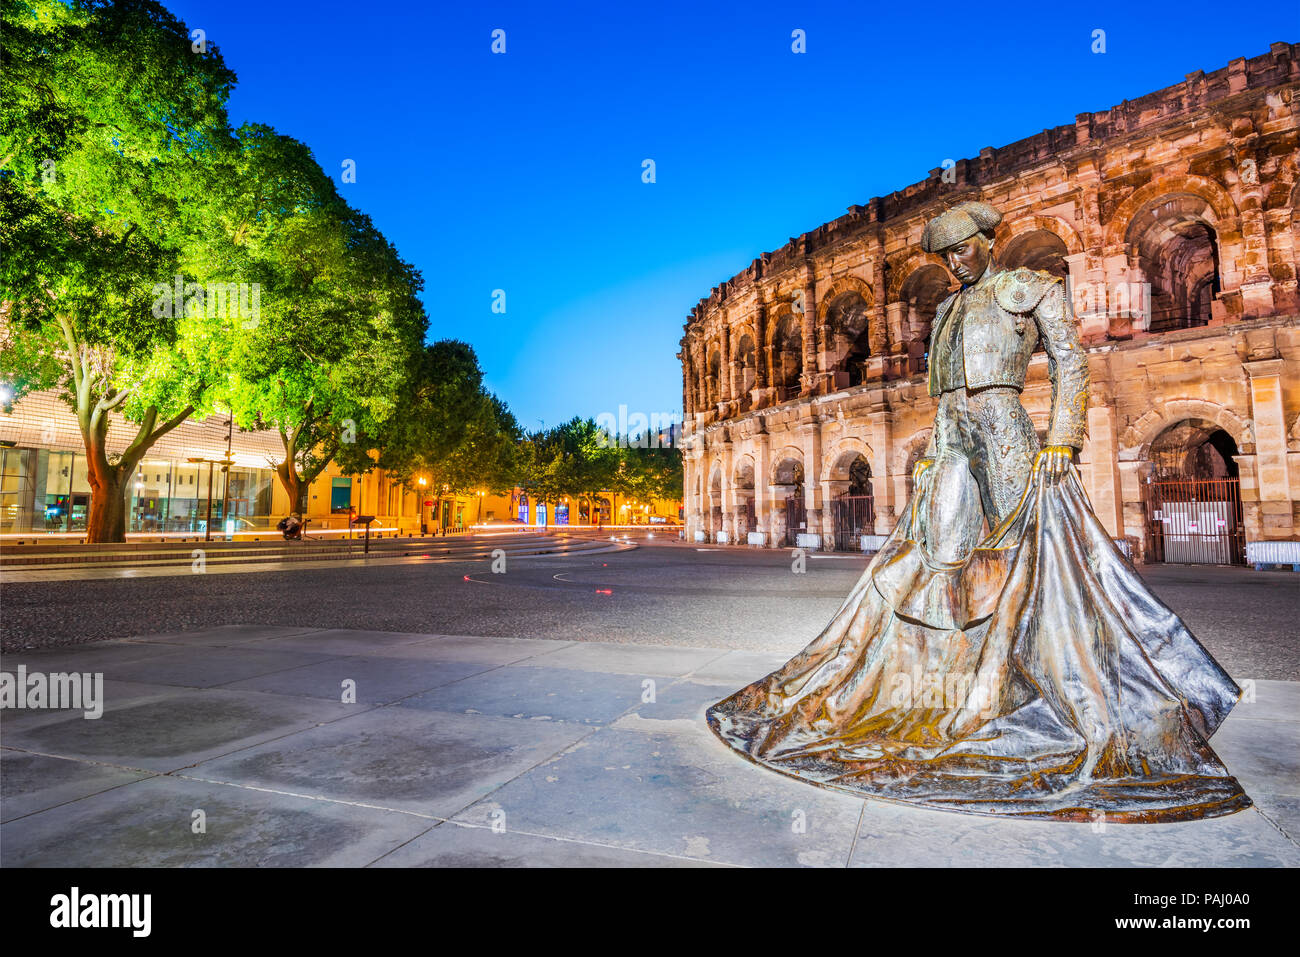 Nimes, ancient Roman amphitheatre in the Occitania, medieval Aquitania region of southern France.  Magnificent huge Arena. - Stock Image